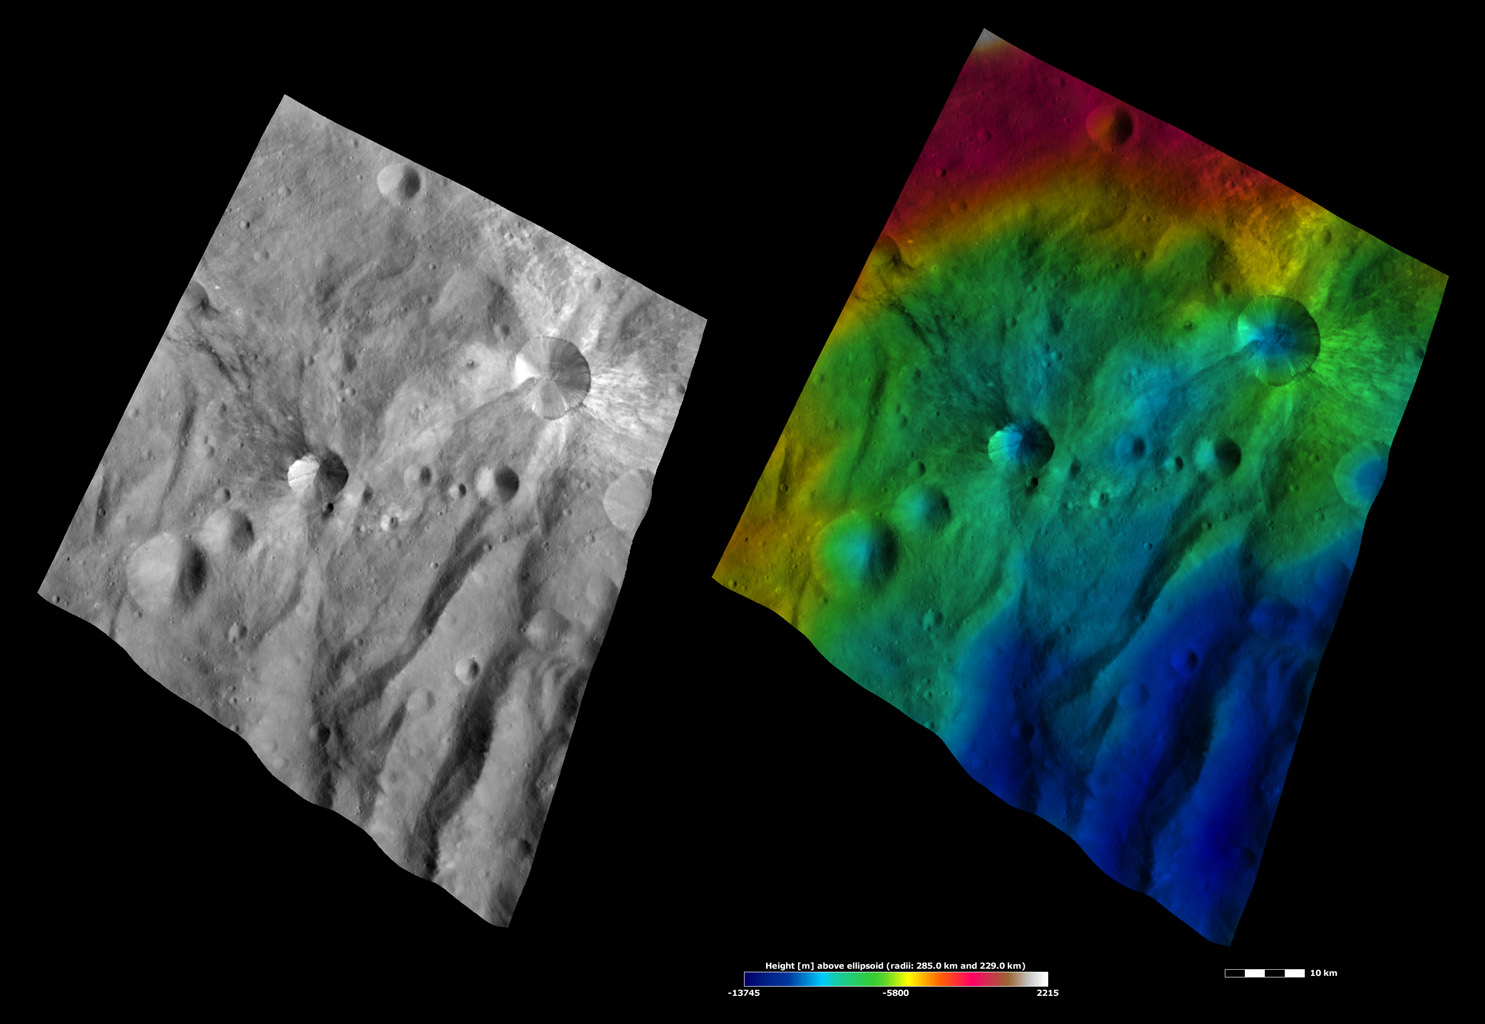 Apparent Brightness and Topography Images of Canuleia and Sossia Craters